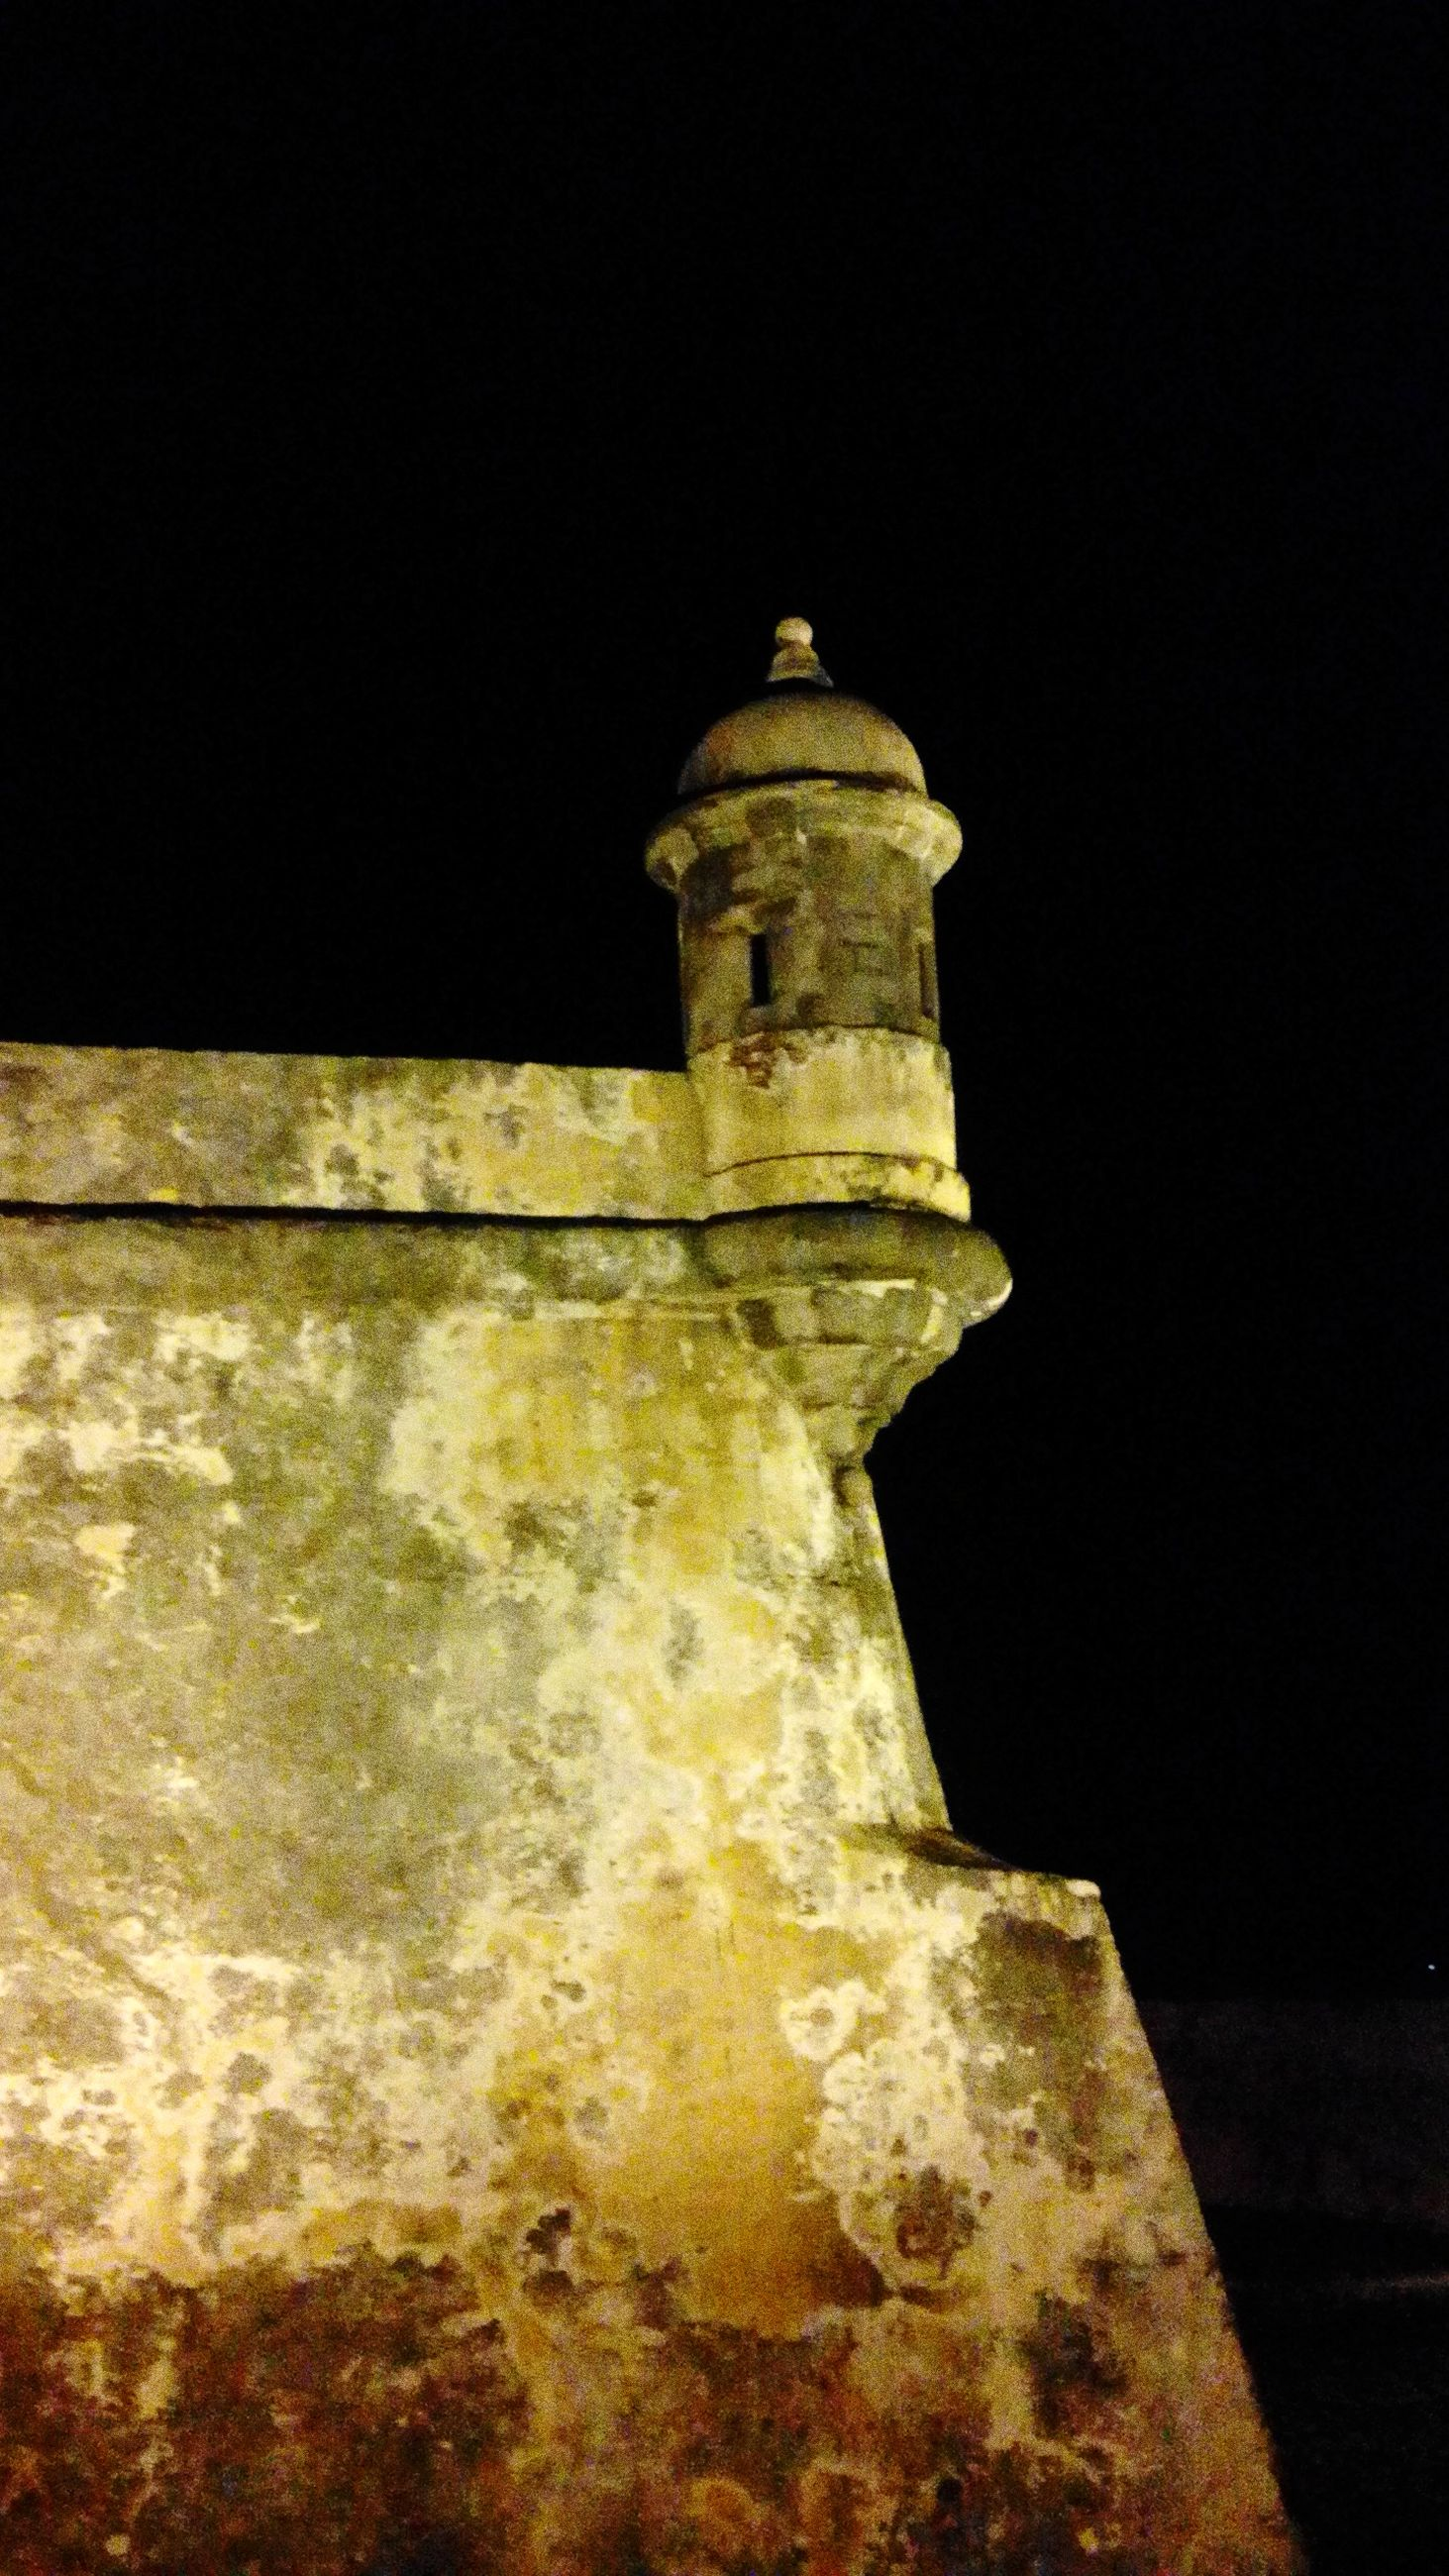 built structure, architecture, clear sky, night, copy space, building exterior, history, low angle view, old, ancient, no people, outdoors, illuminated, the past, wall - building feature, stone material, famous place, travel destinations, dark, religion